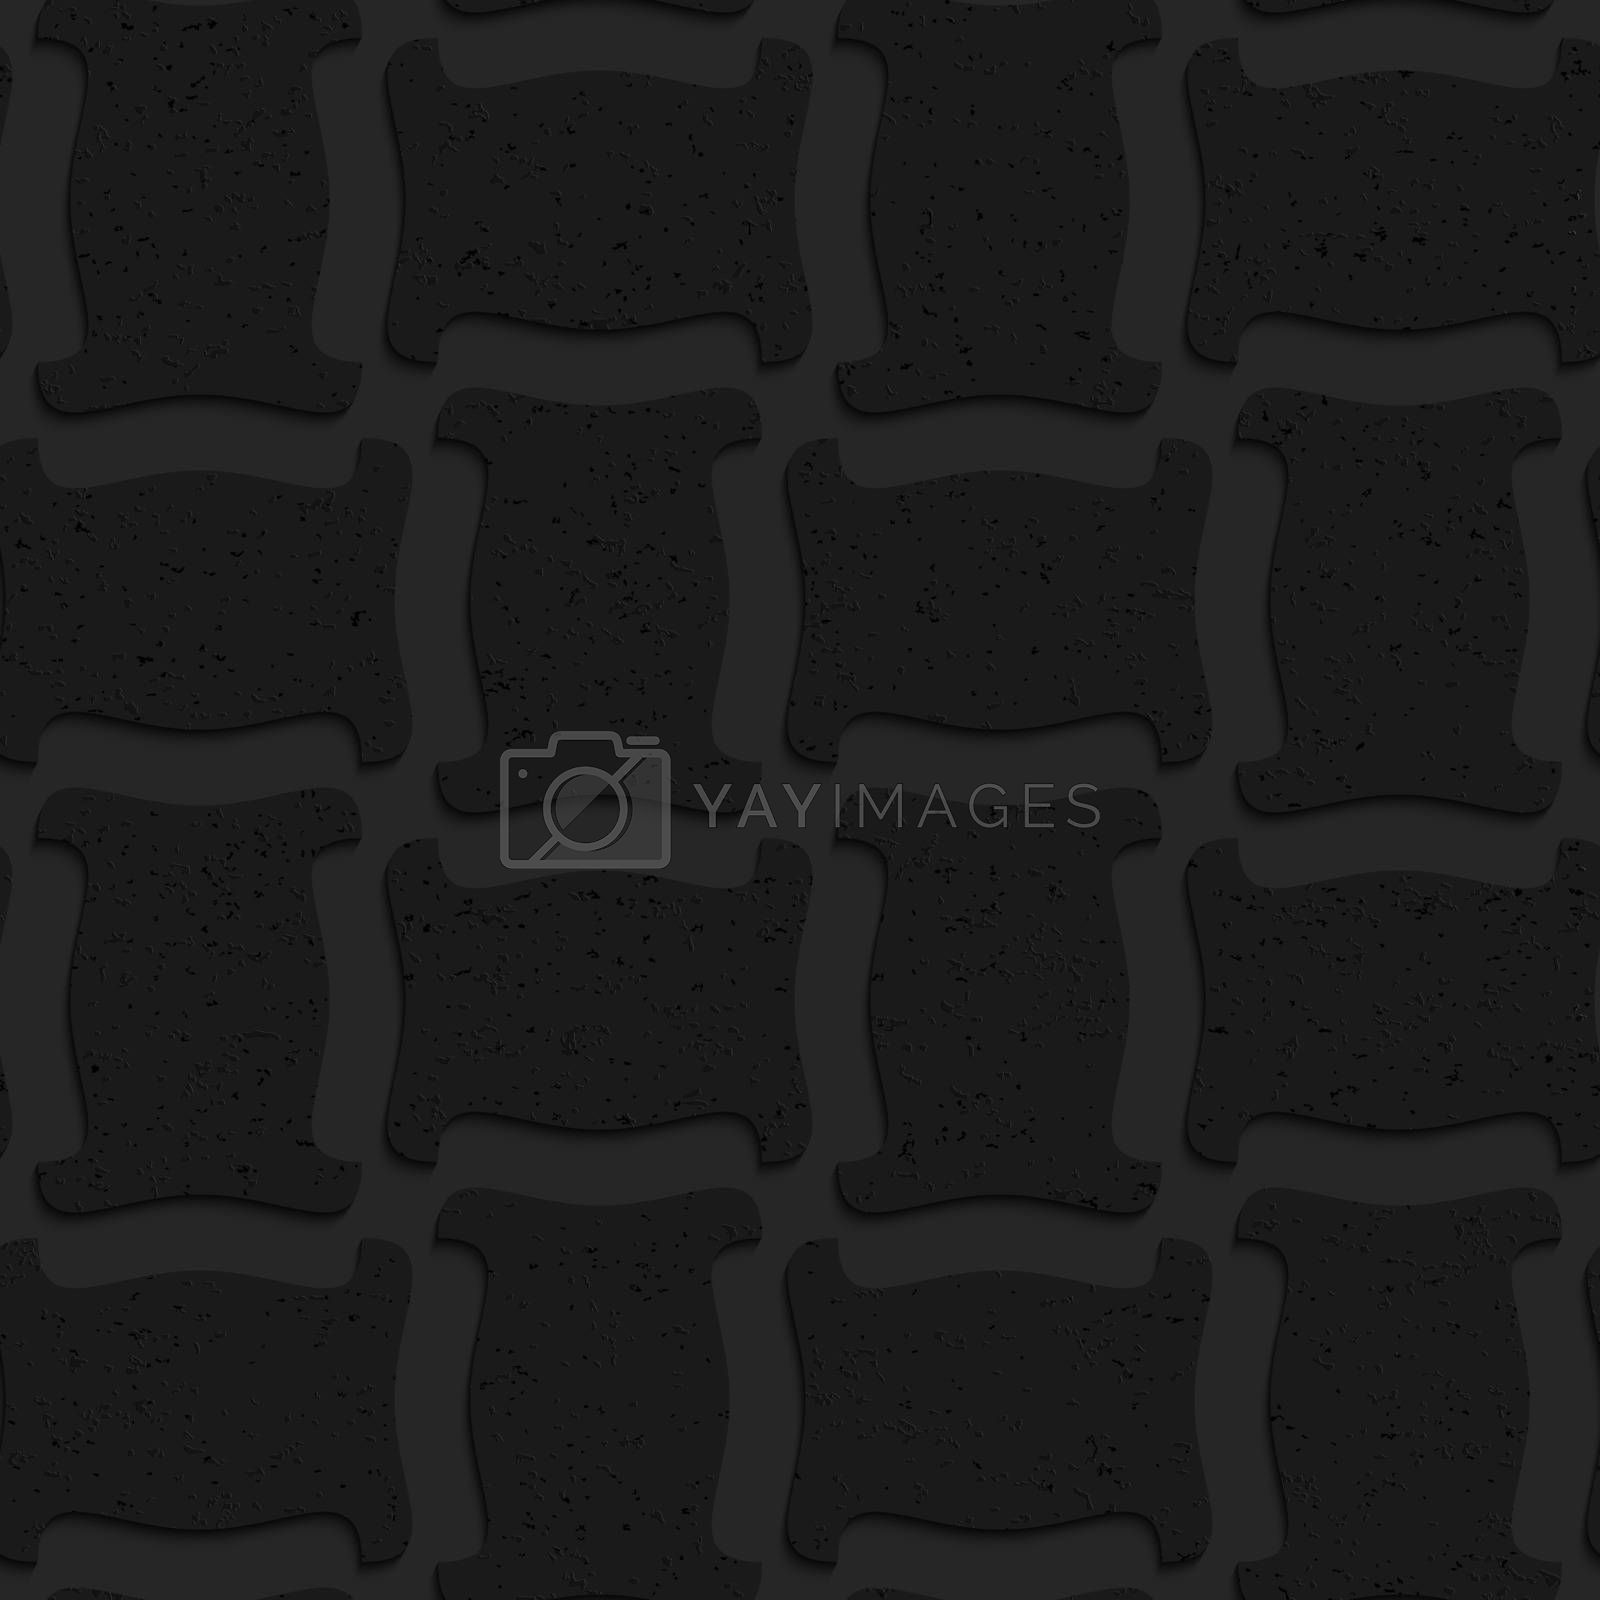 Seamless geometric background. Pattern with 3D texture and realistic shadow.Textured black plastic solid spool shape.